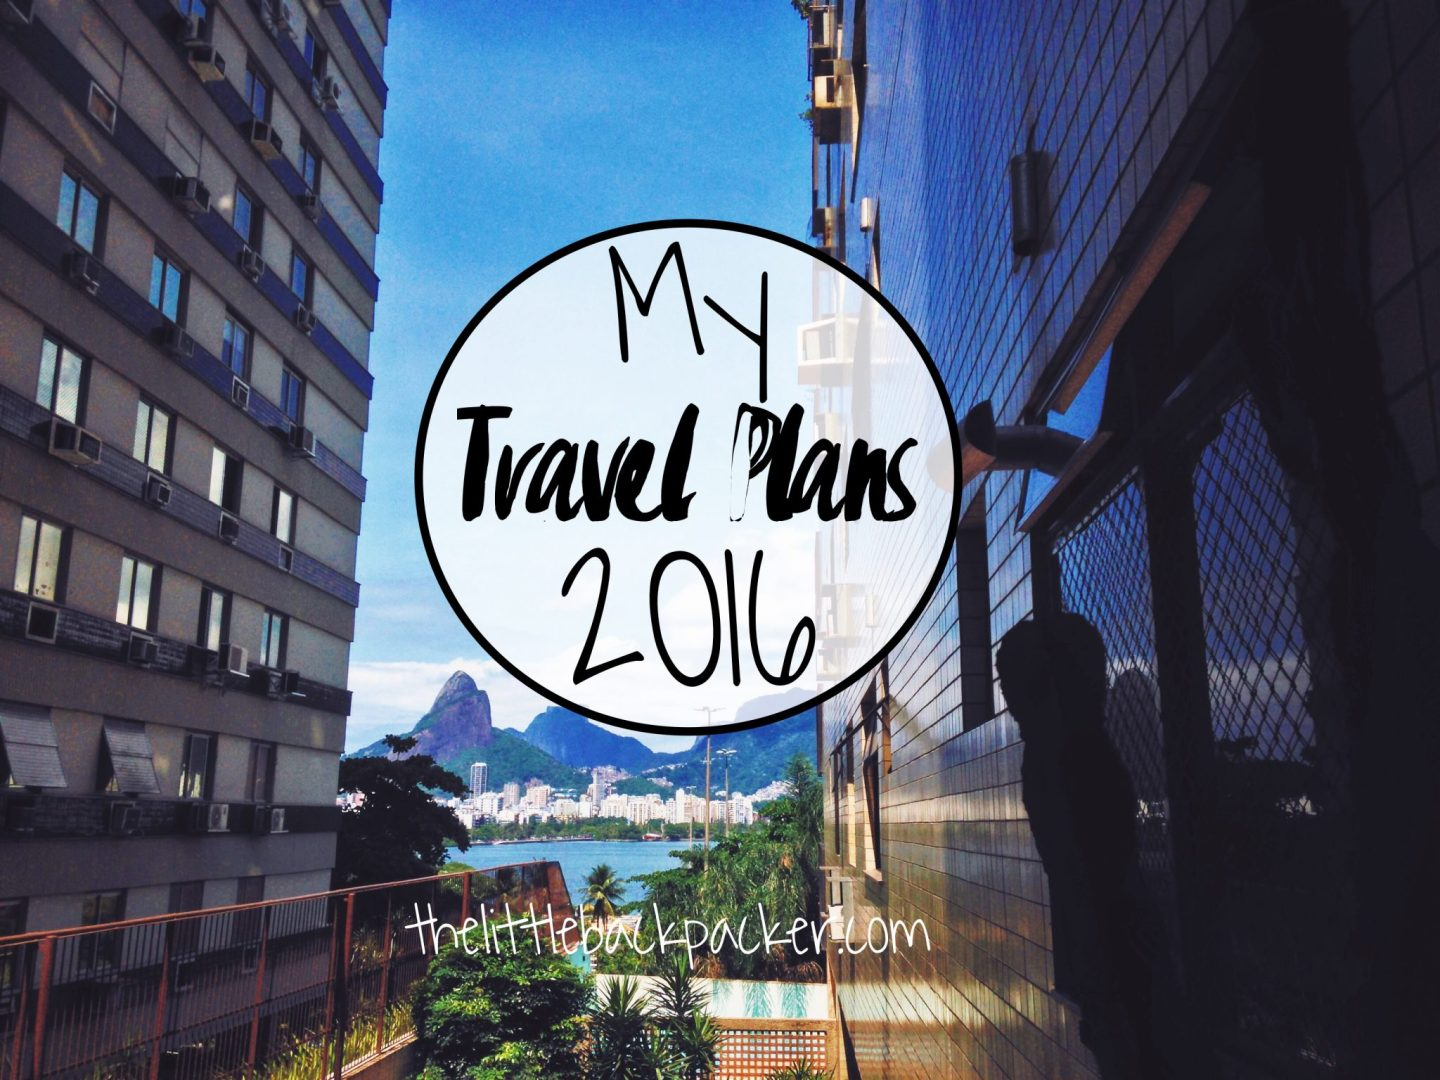 My Travel Plans for 2016